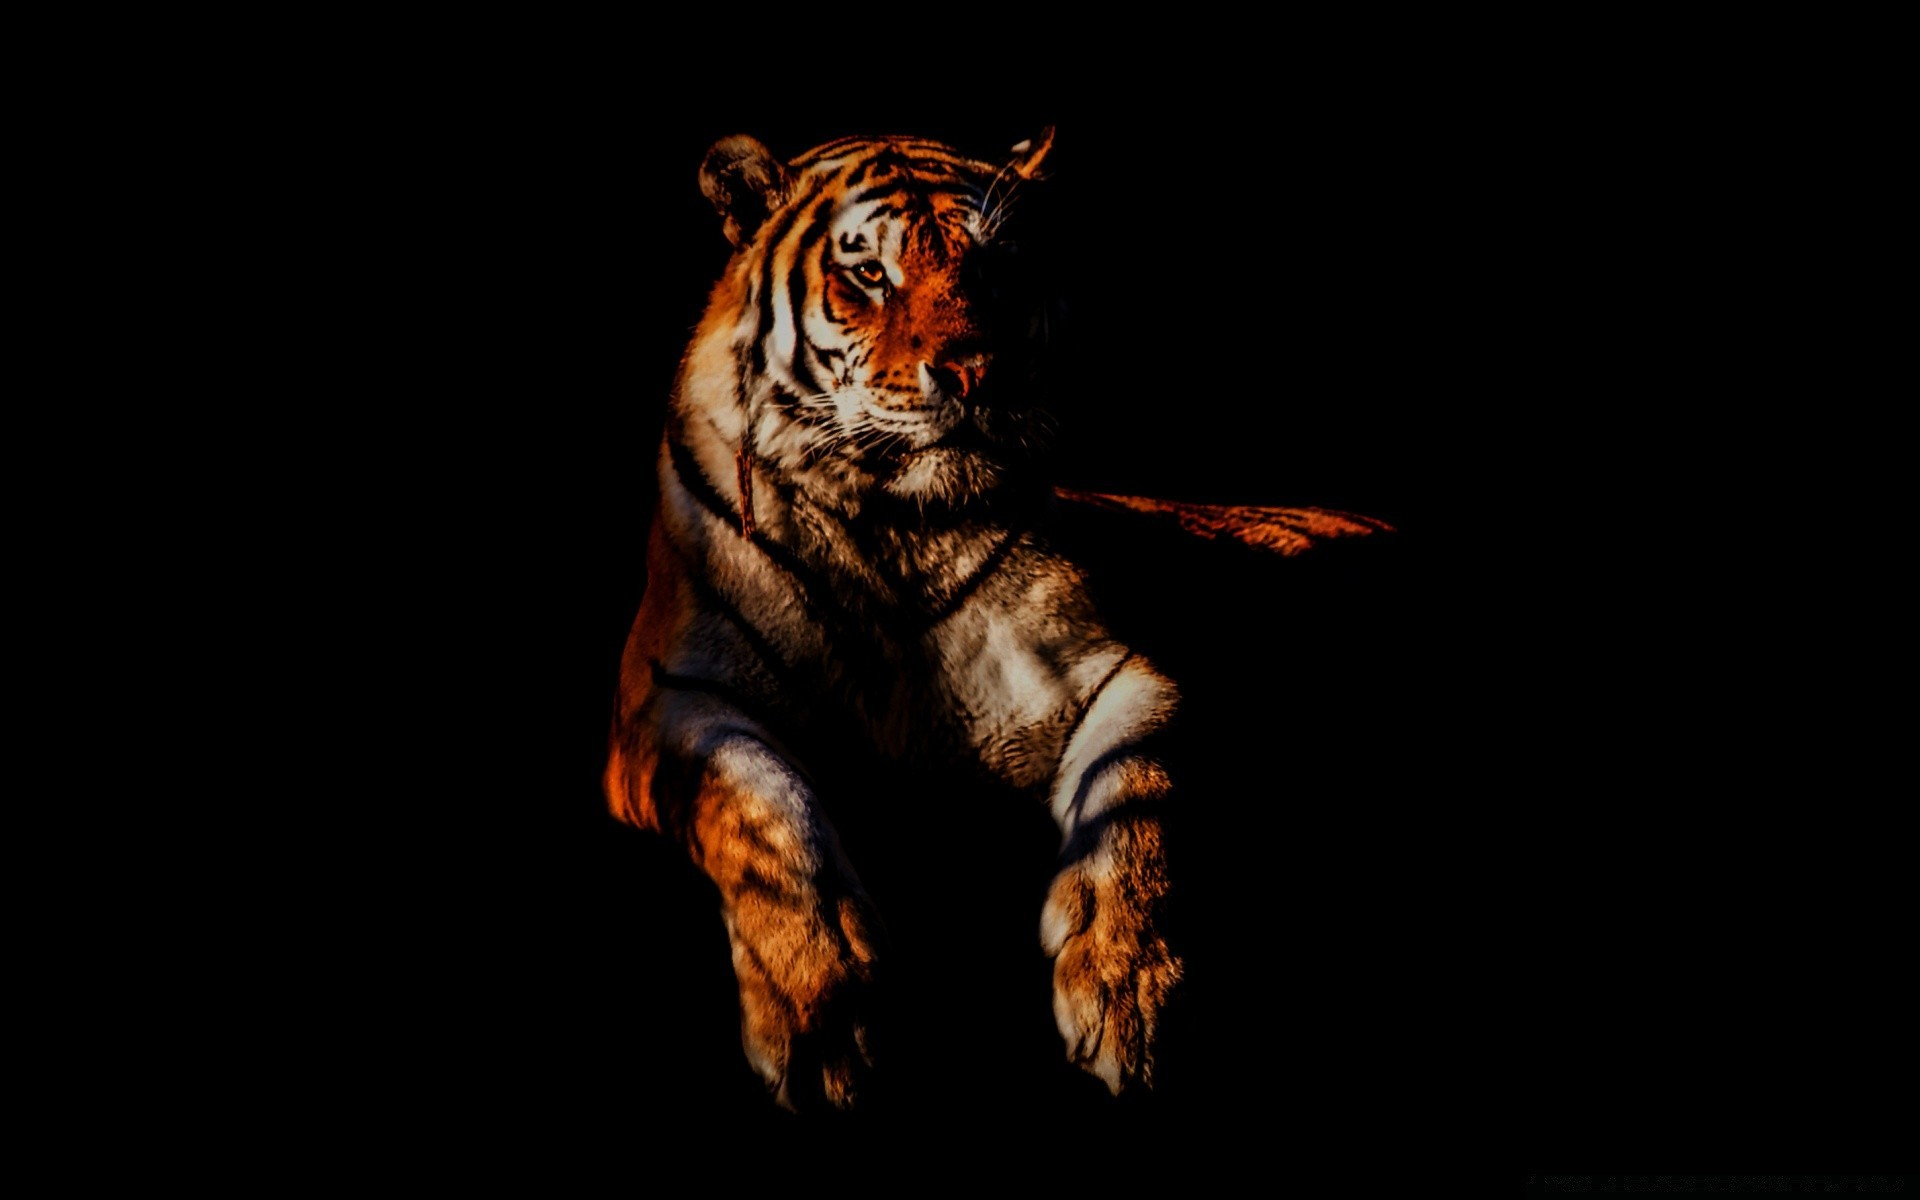 Tiger IPhone Wallpapers For Free